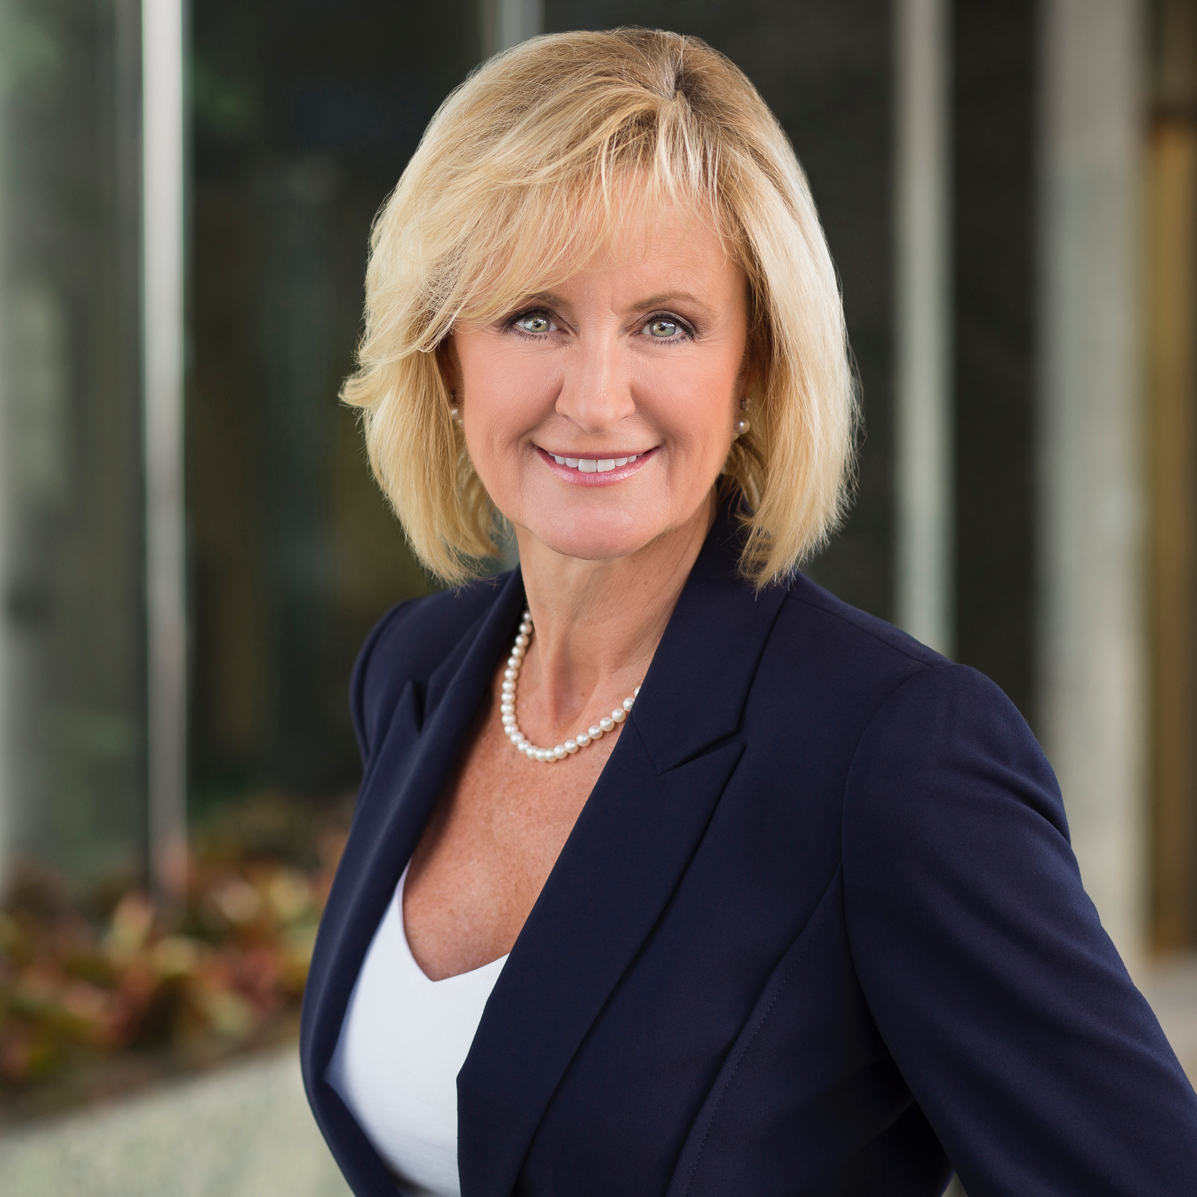 Lorena Ludovici Selected to Board of Trustees of the Hillsborough County Bar Foundation